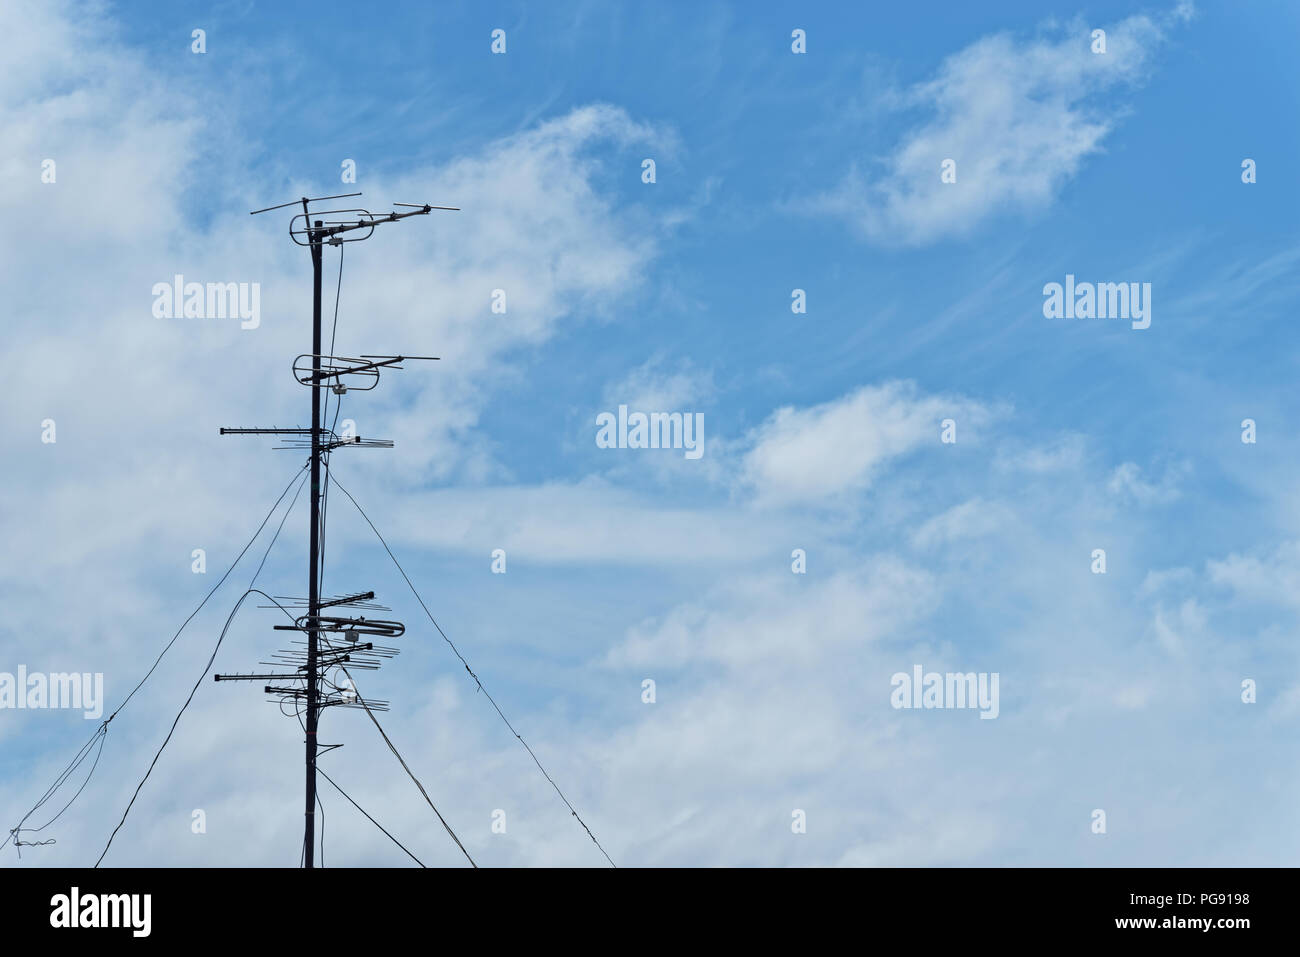 Television aerial against cloudy sky. Komsomolsk-on-Amur, Russia - Stock Image